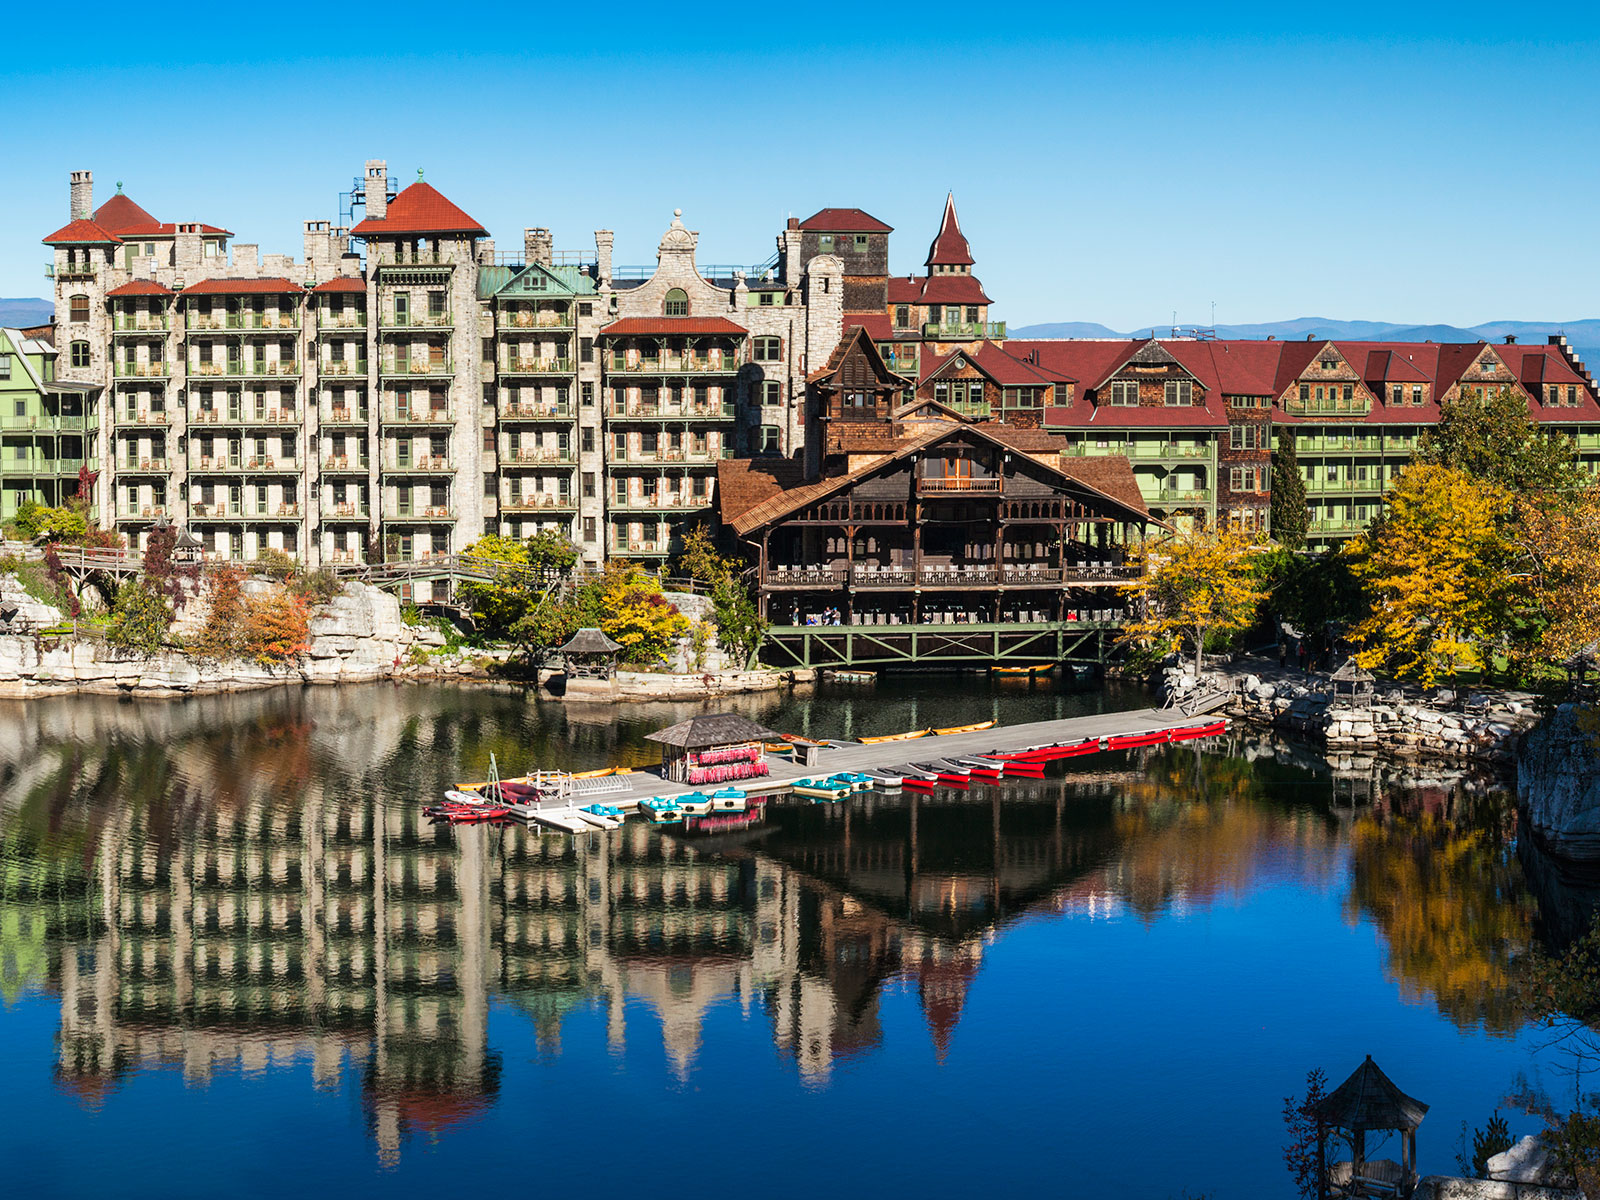 mohonk mountain house in new paltz new york